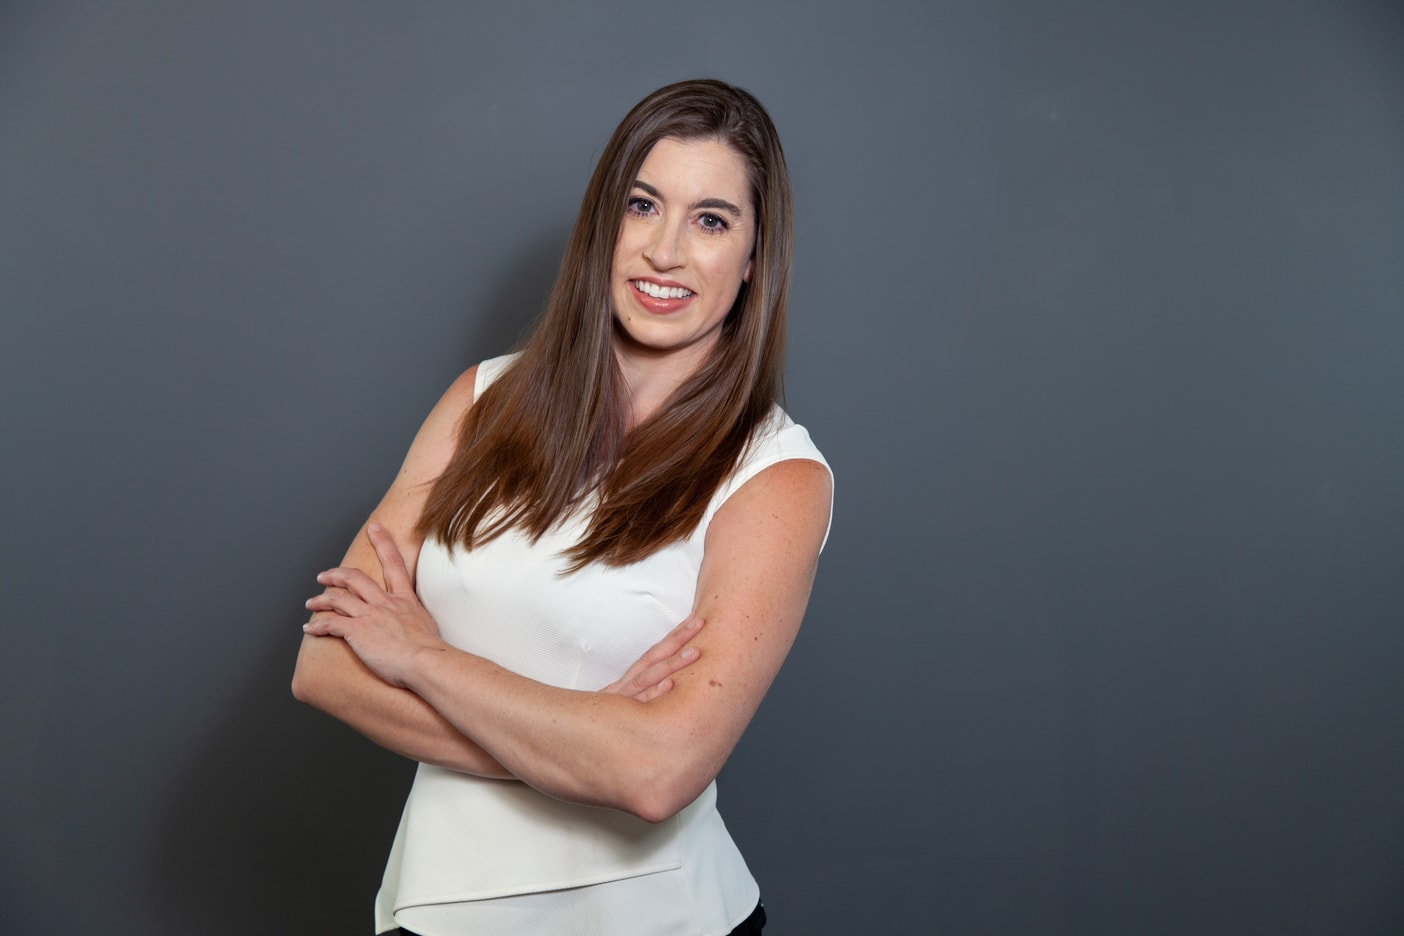 Erin T - Our Team